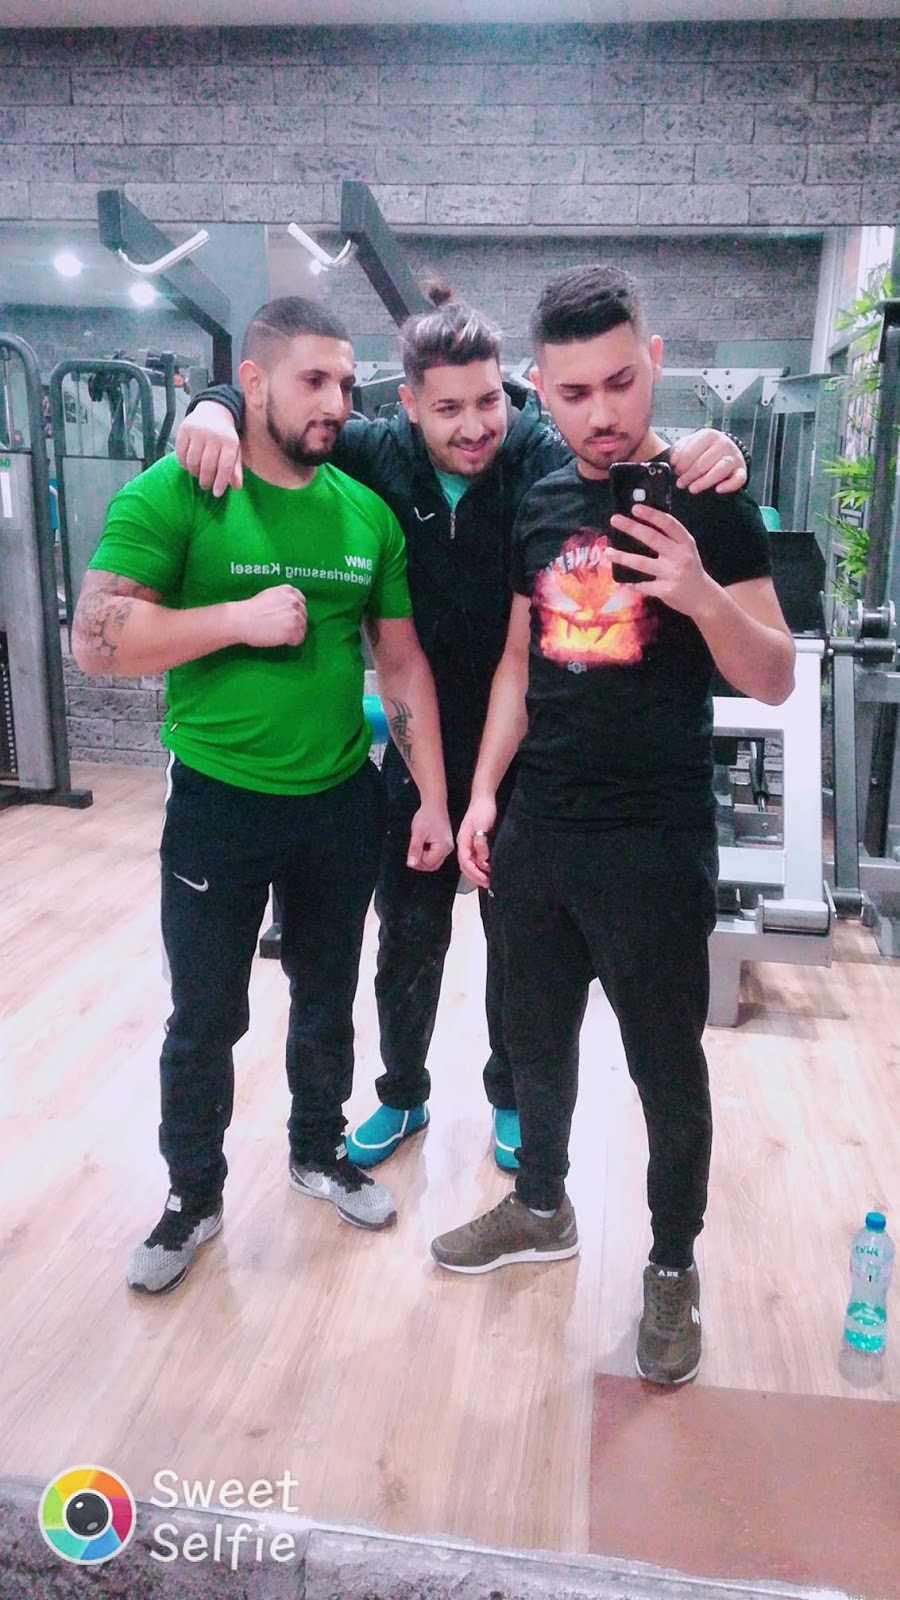 Young hot gypsy men at the gym - Hot Gypsy Men and Boys ...